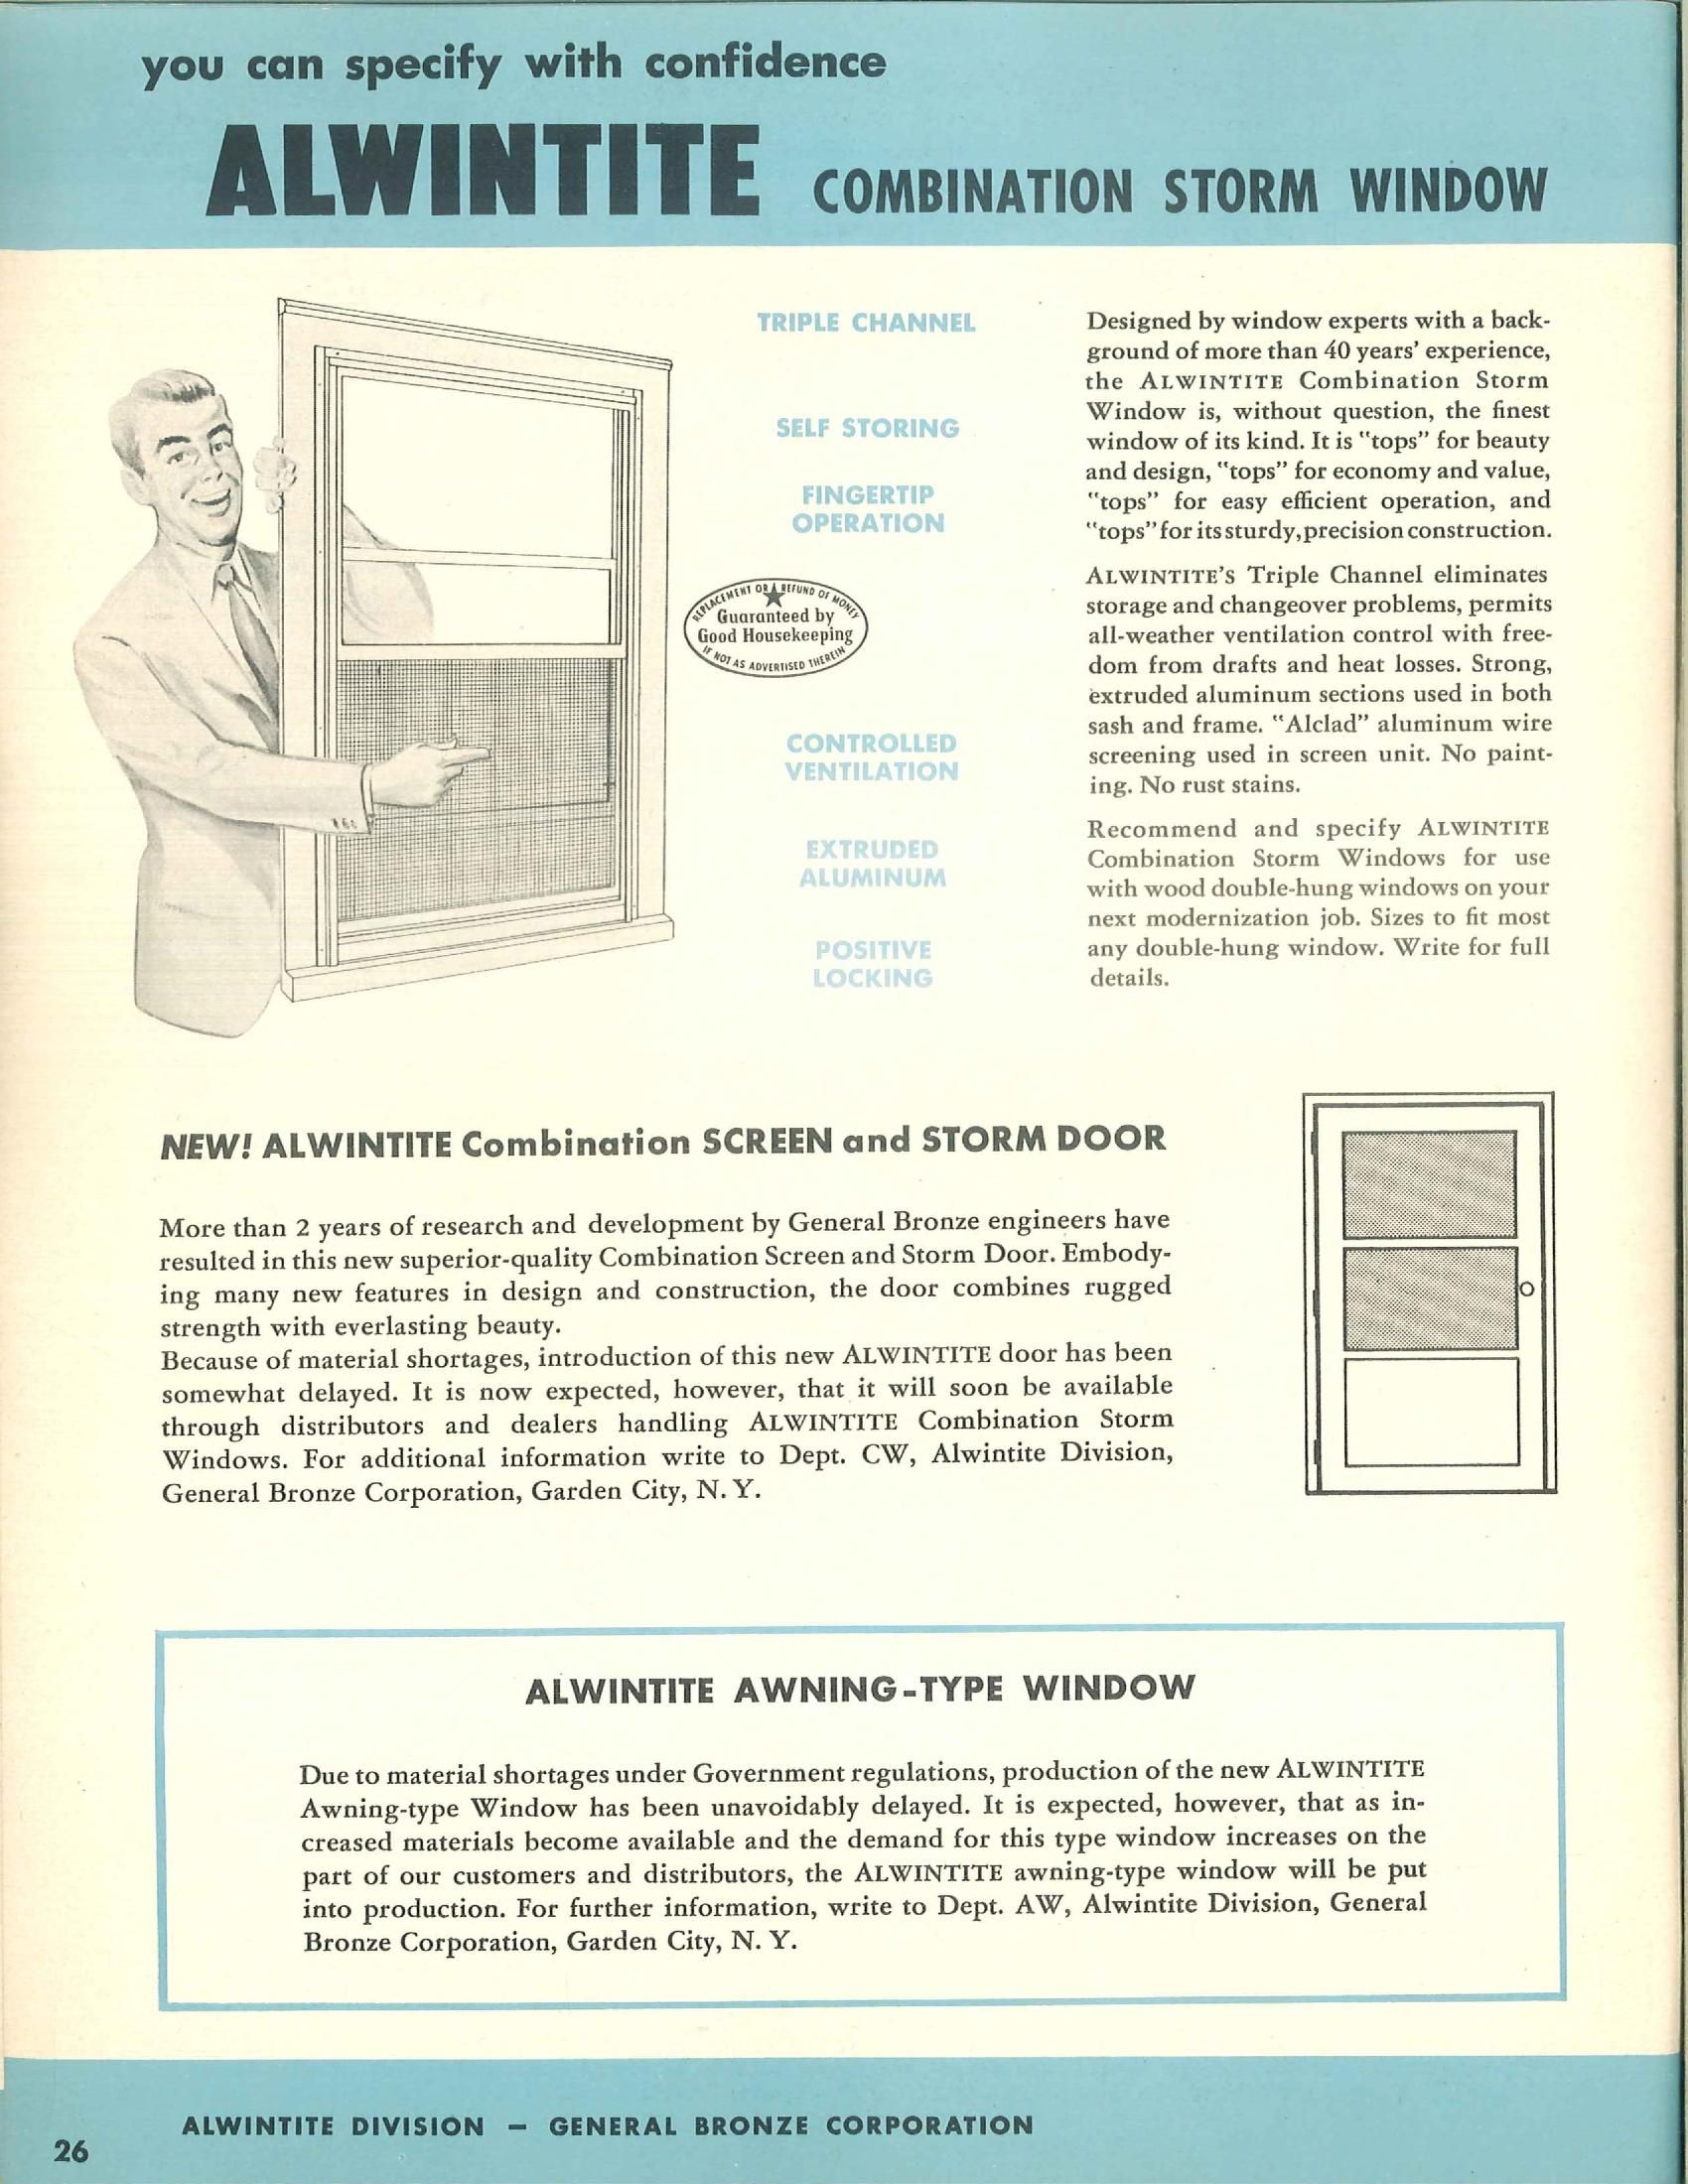 Alwintite Aluminum Windows | Old catalogues | Pinterest | Window